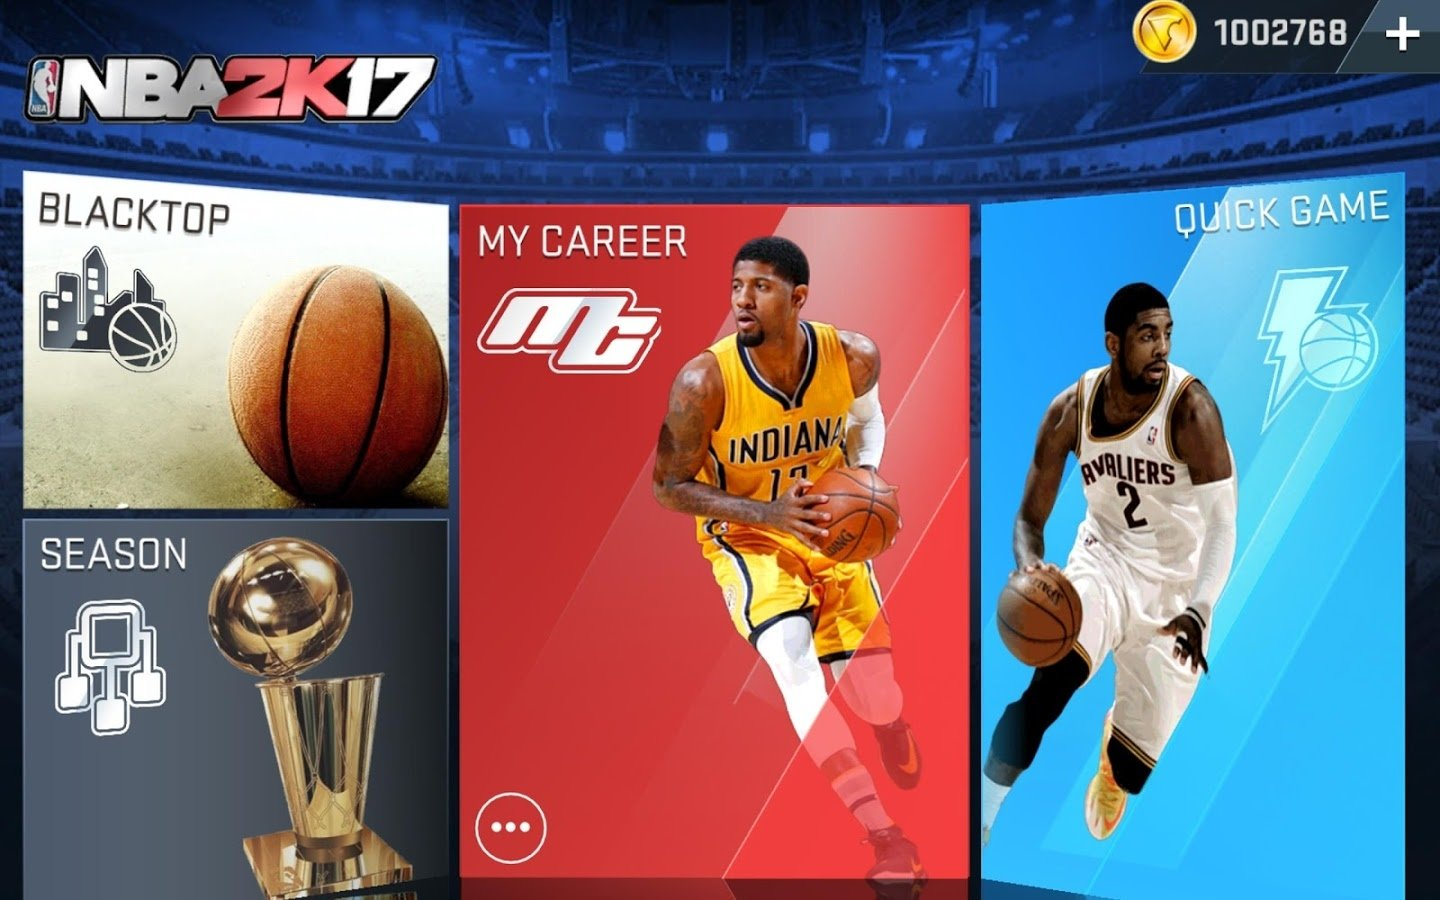 NBA 2K17 Android image 6